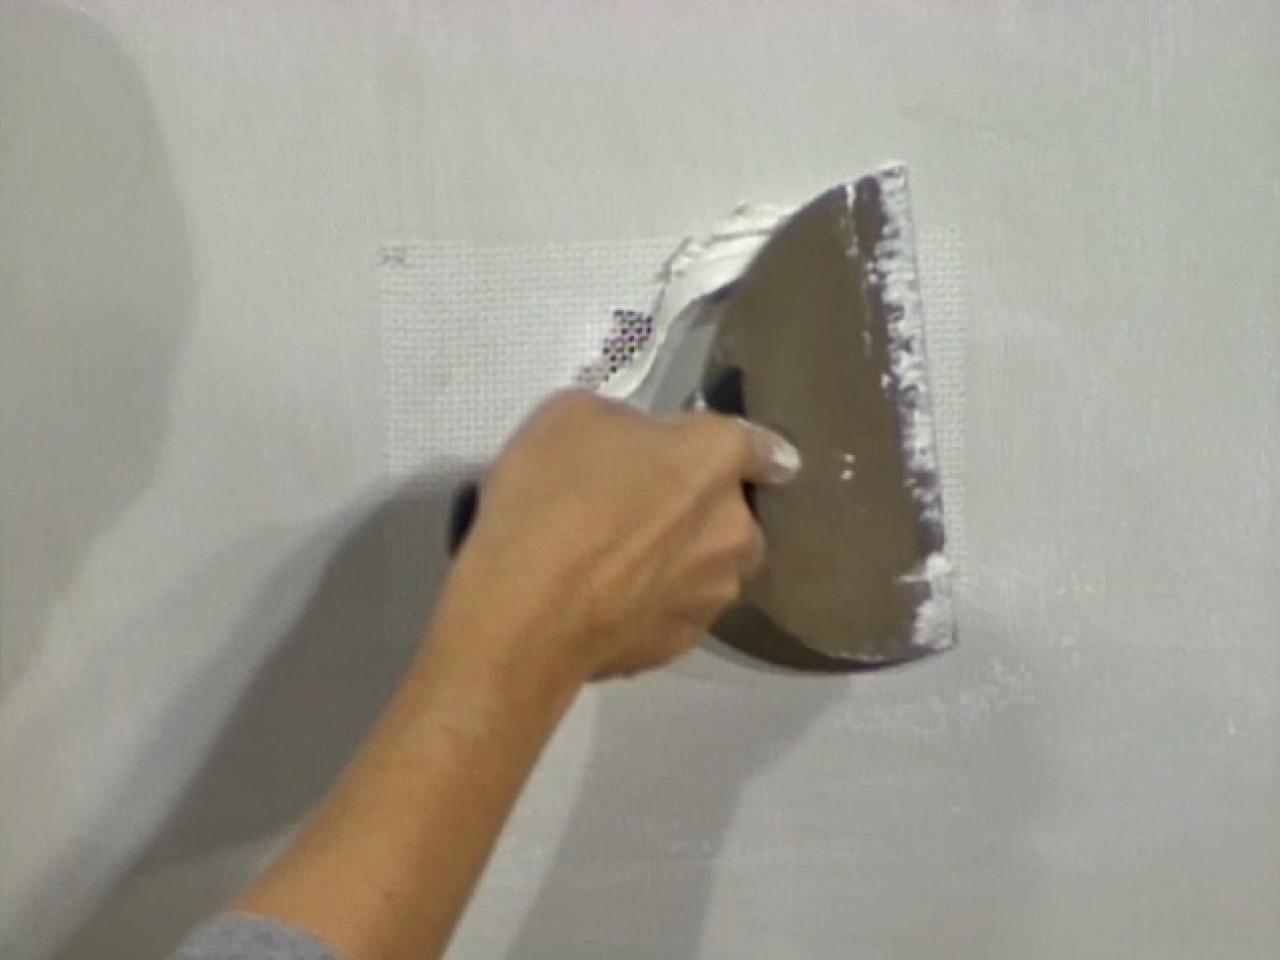 How to Patch Drywall with Fiberglass Mesh how tos DIY 1280x960